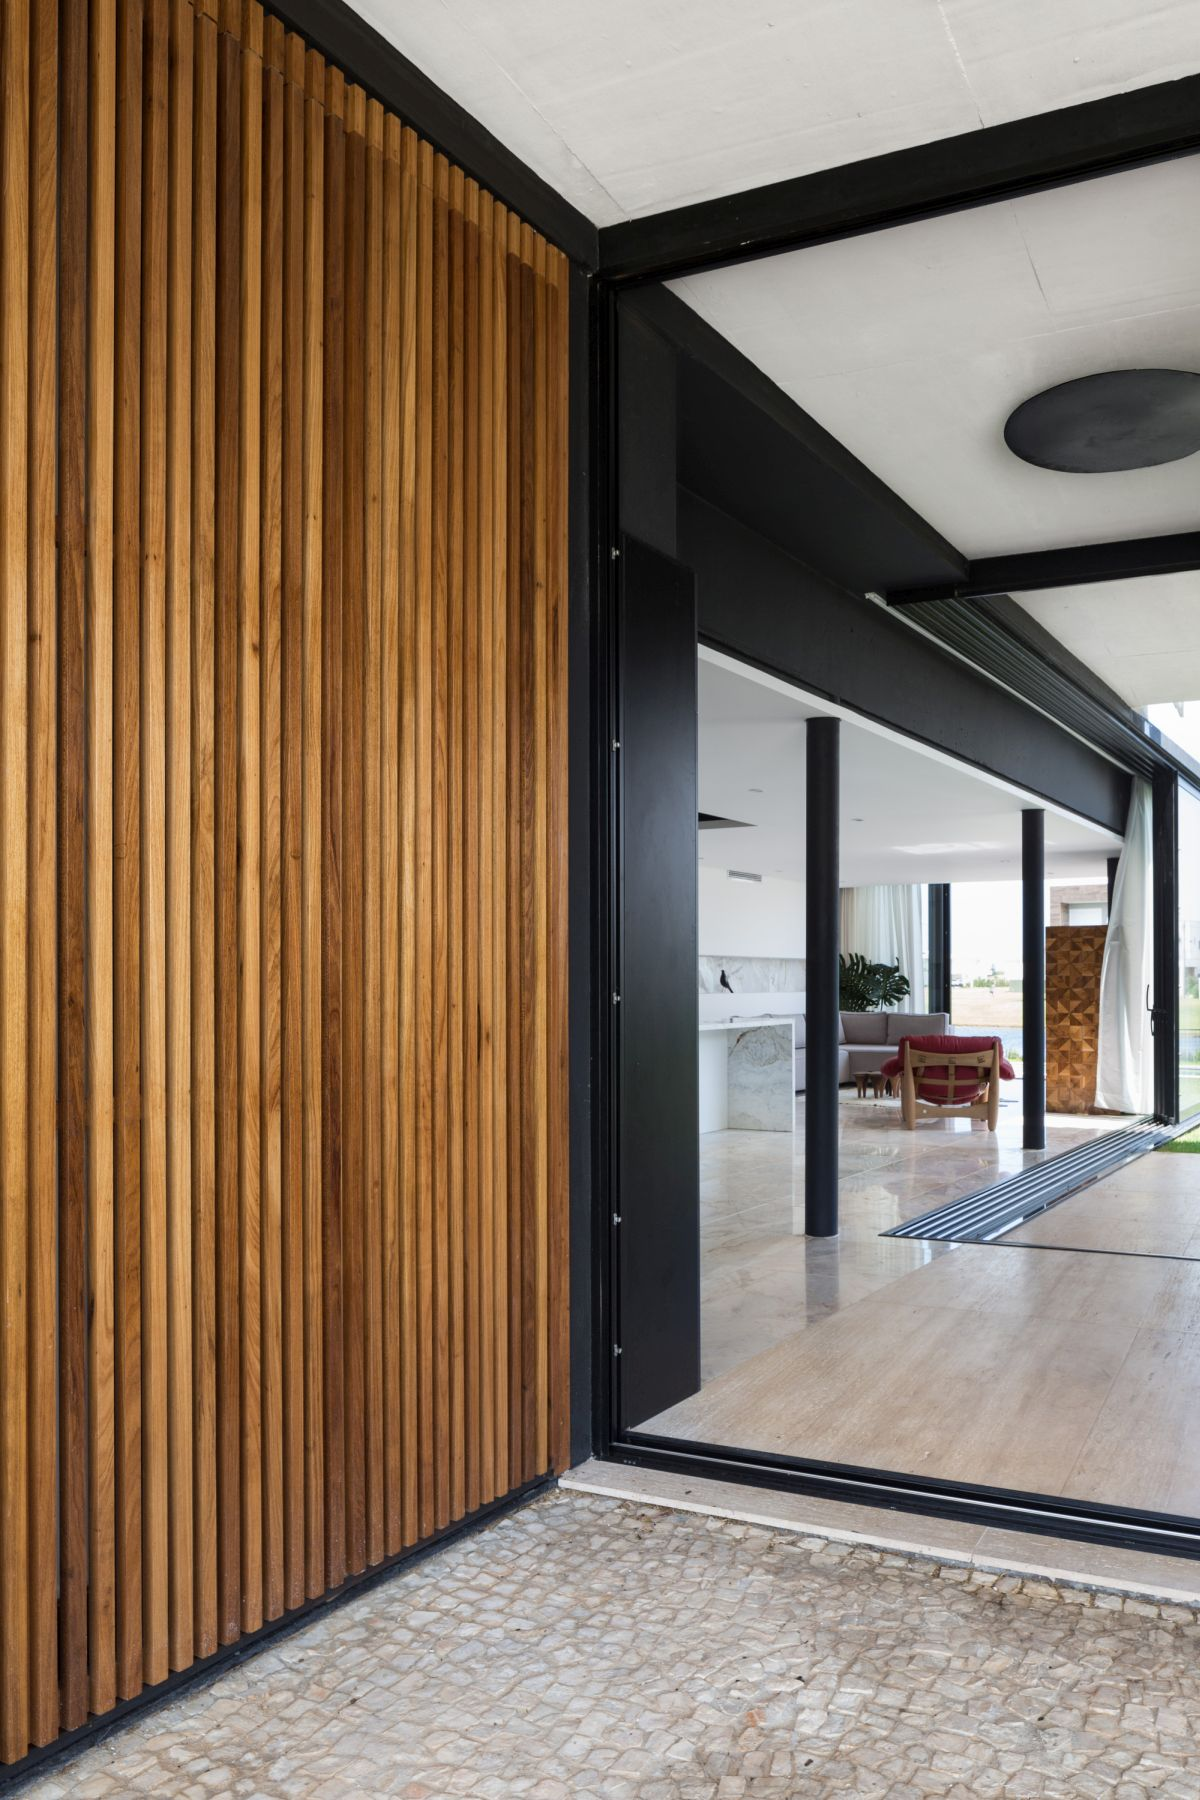 Enseada House in Brazil hallway and entrance